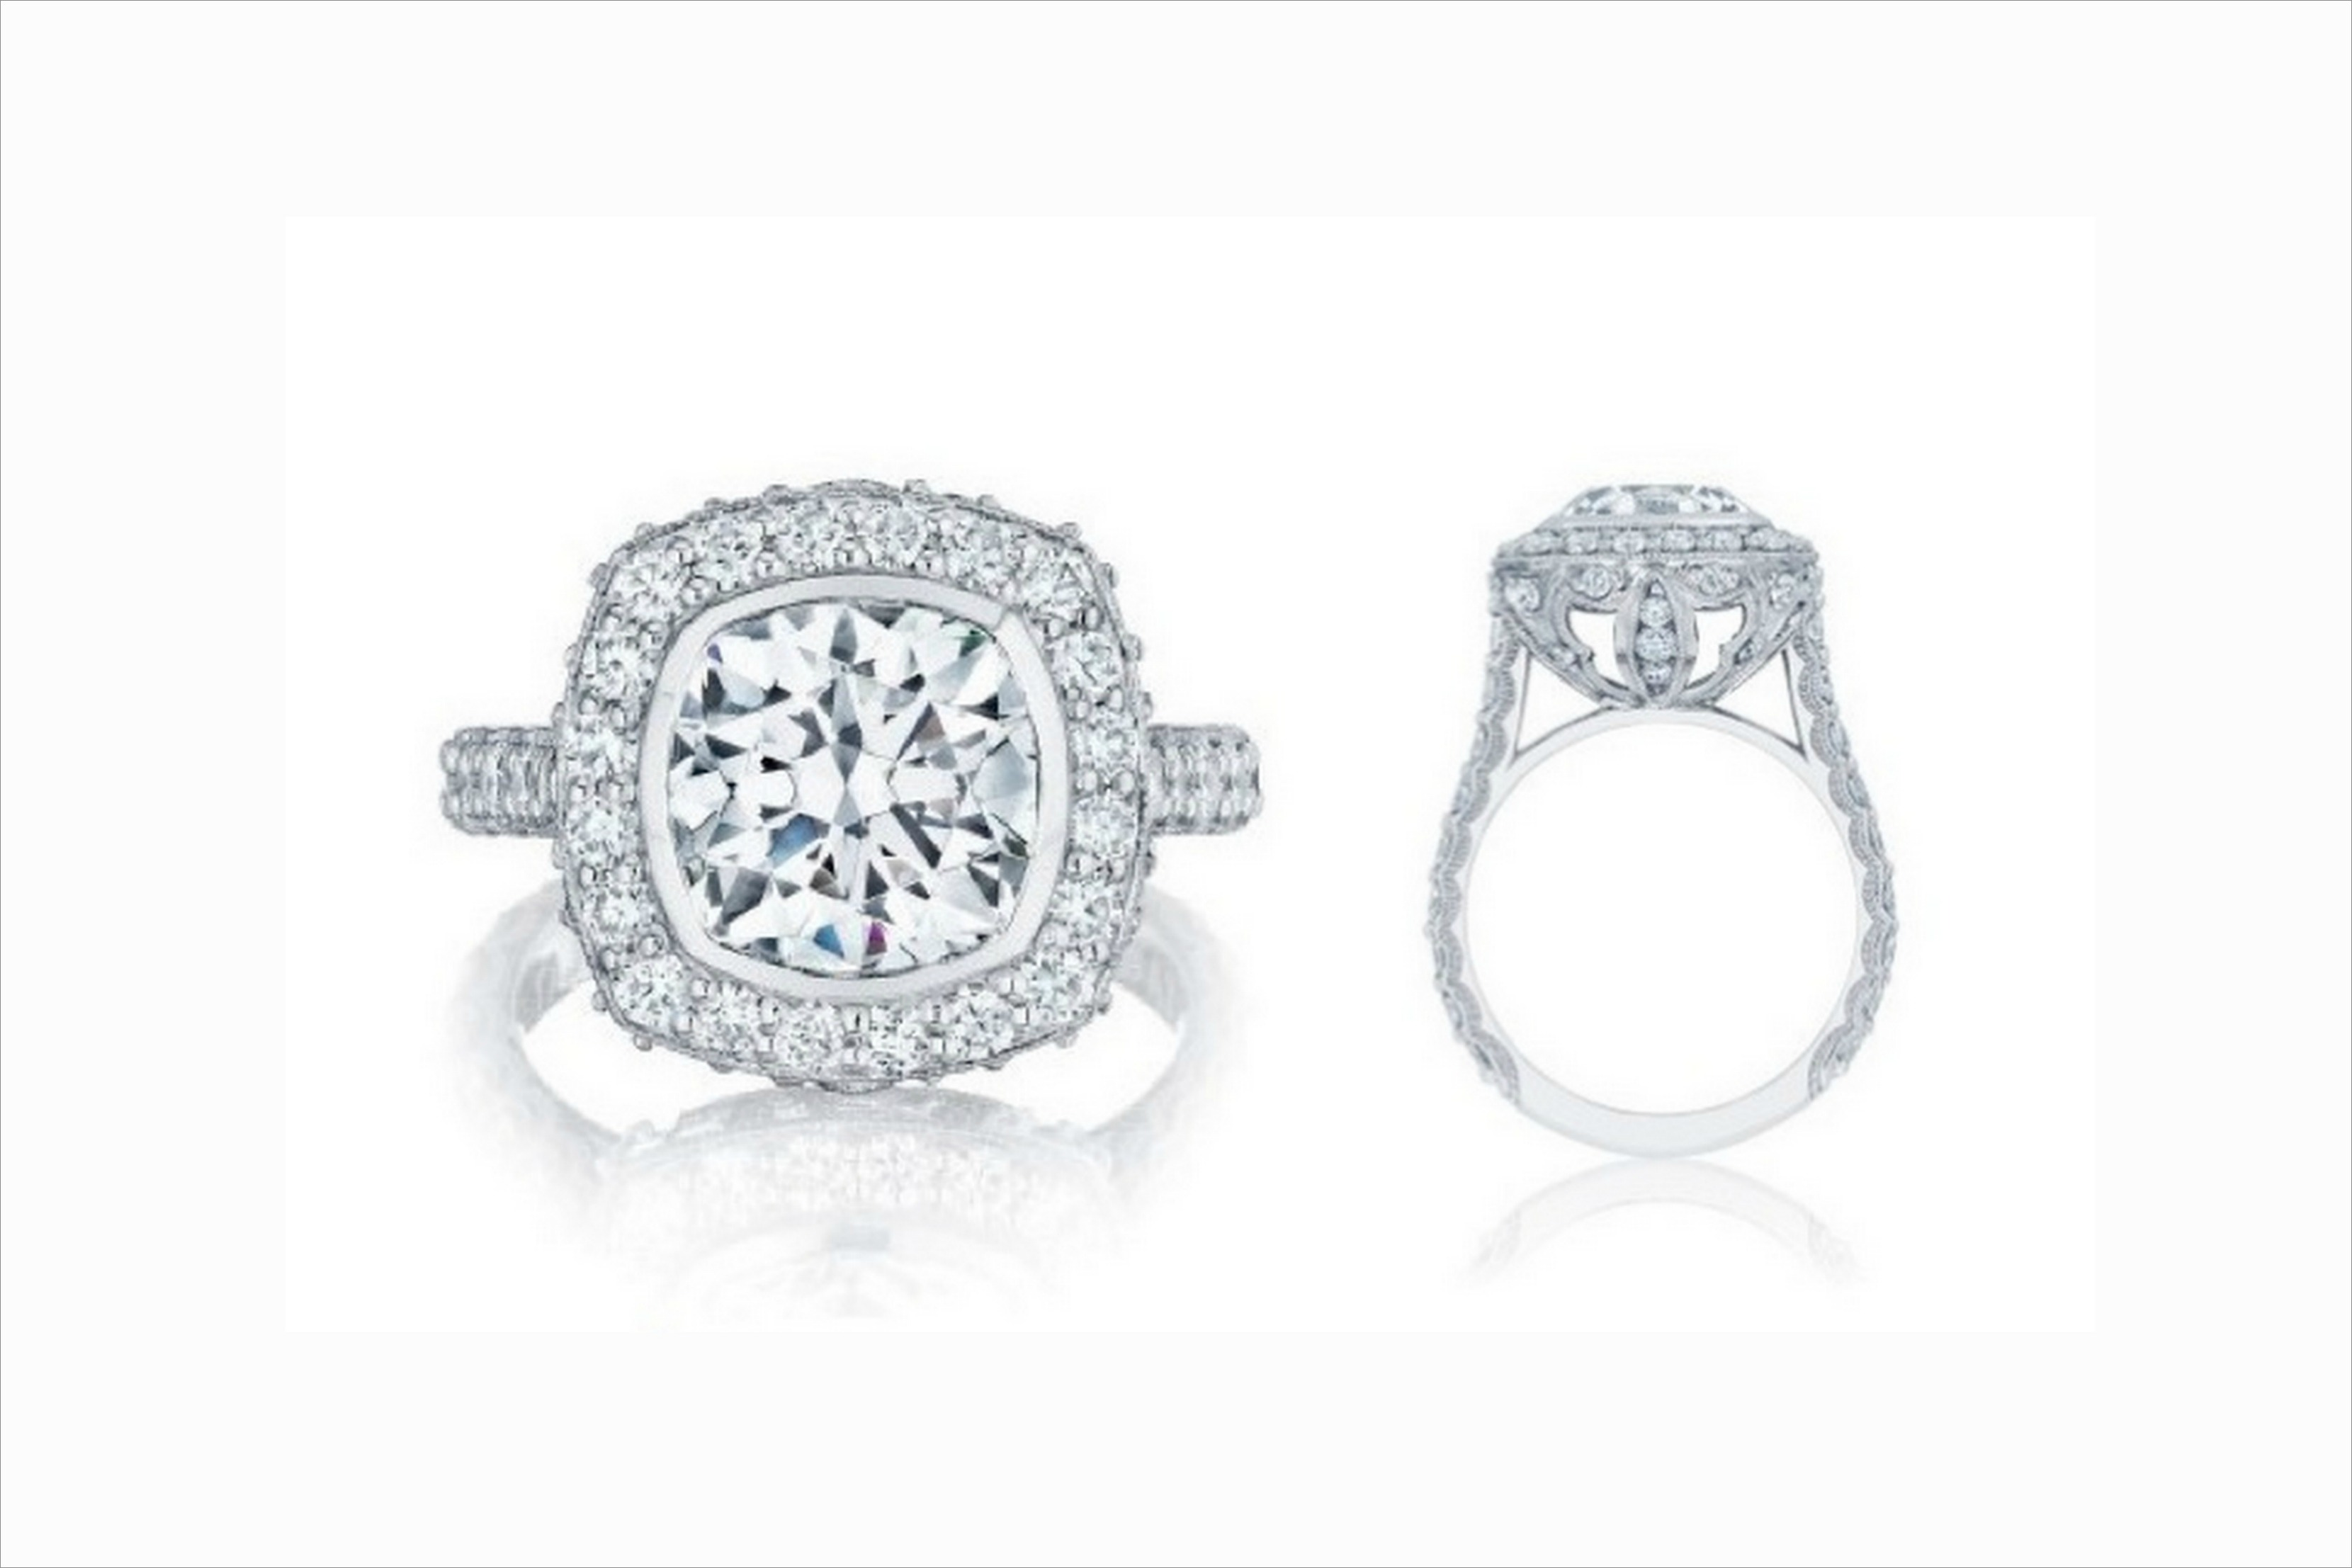 bridal two barin radiant accented platinum ring w michael stone side diamond center stones emerald cut